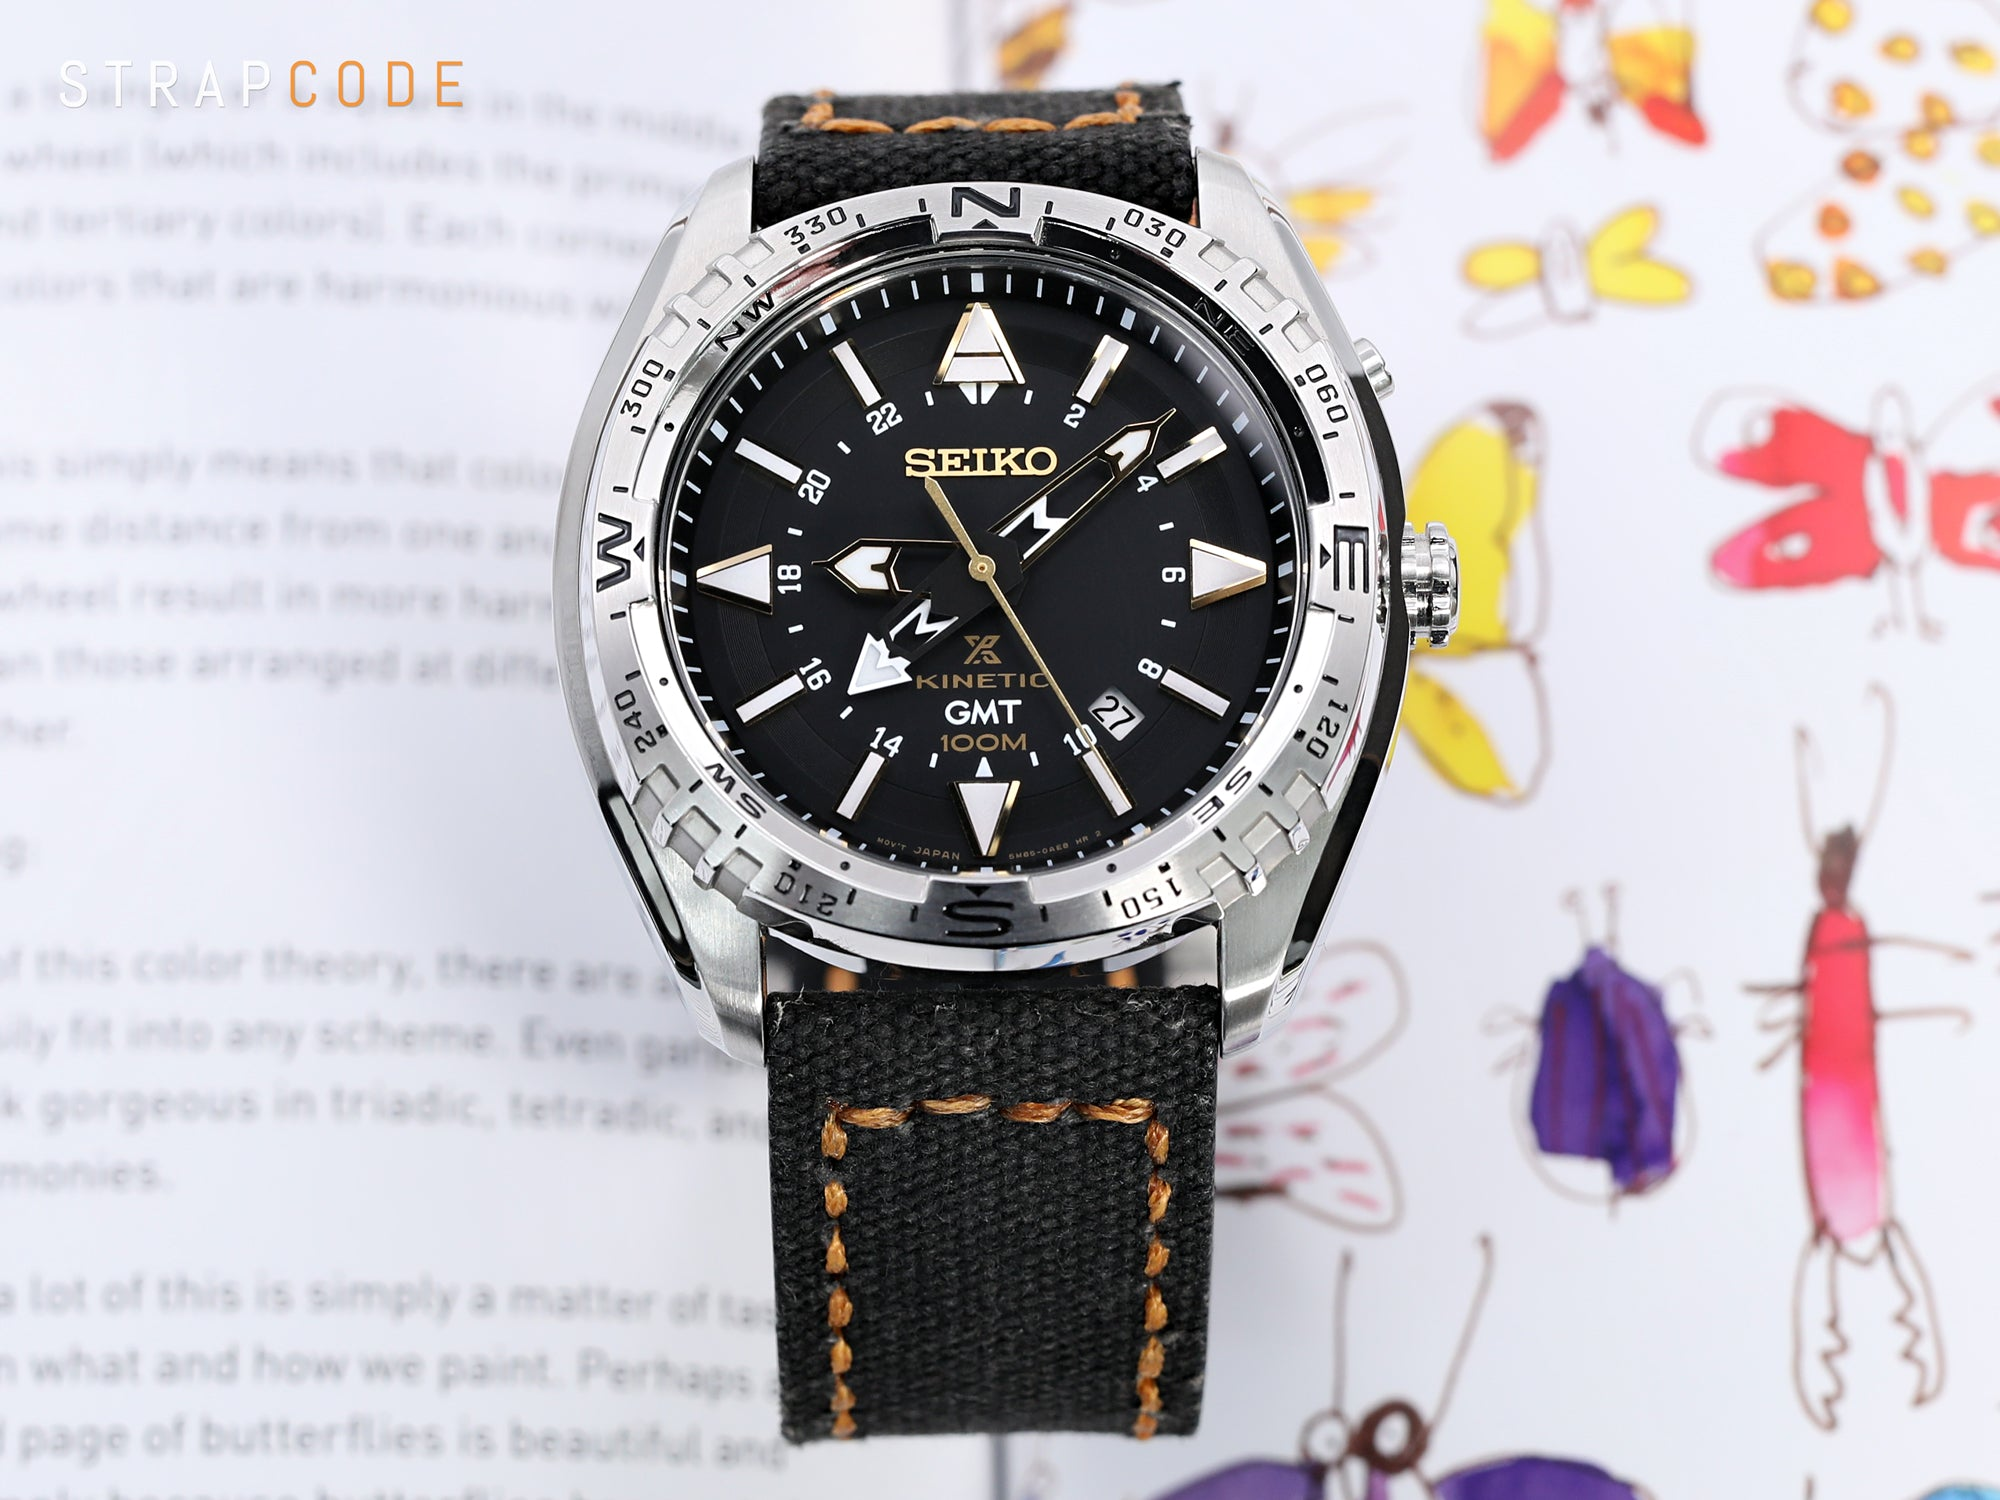 24mm MiLTAT Black Leather Washed Canvas Ammo Watch Strap in Golden Brown Stitches